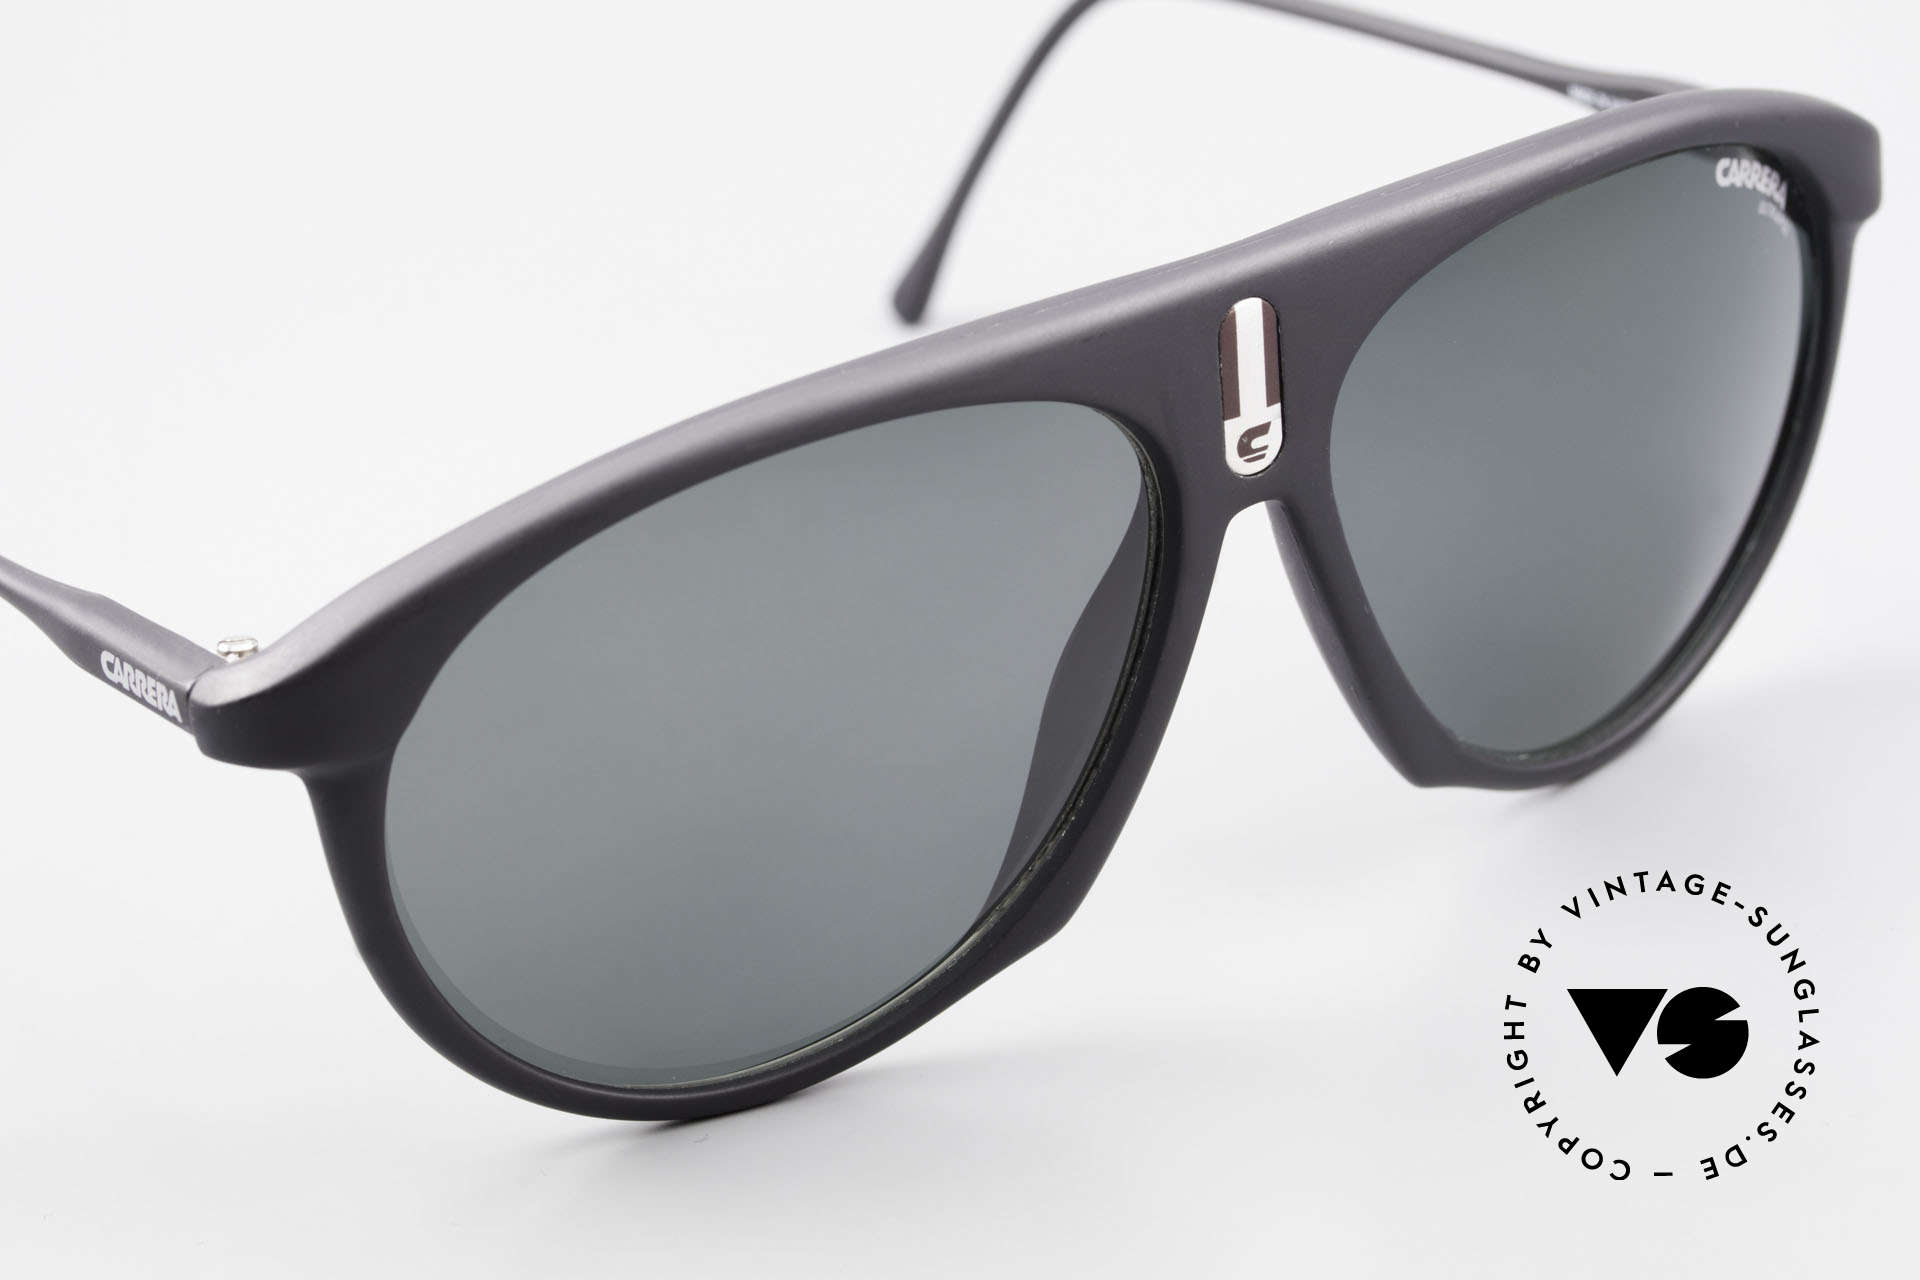 Carrera 5427 80's Polarized Sports Shades, new old stock (like all our 80's Carrera sunnies), Made for Men and Women